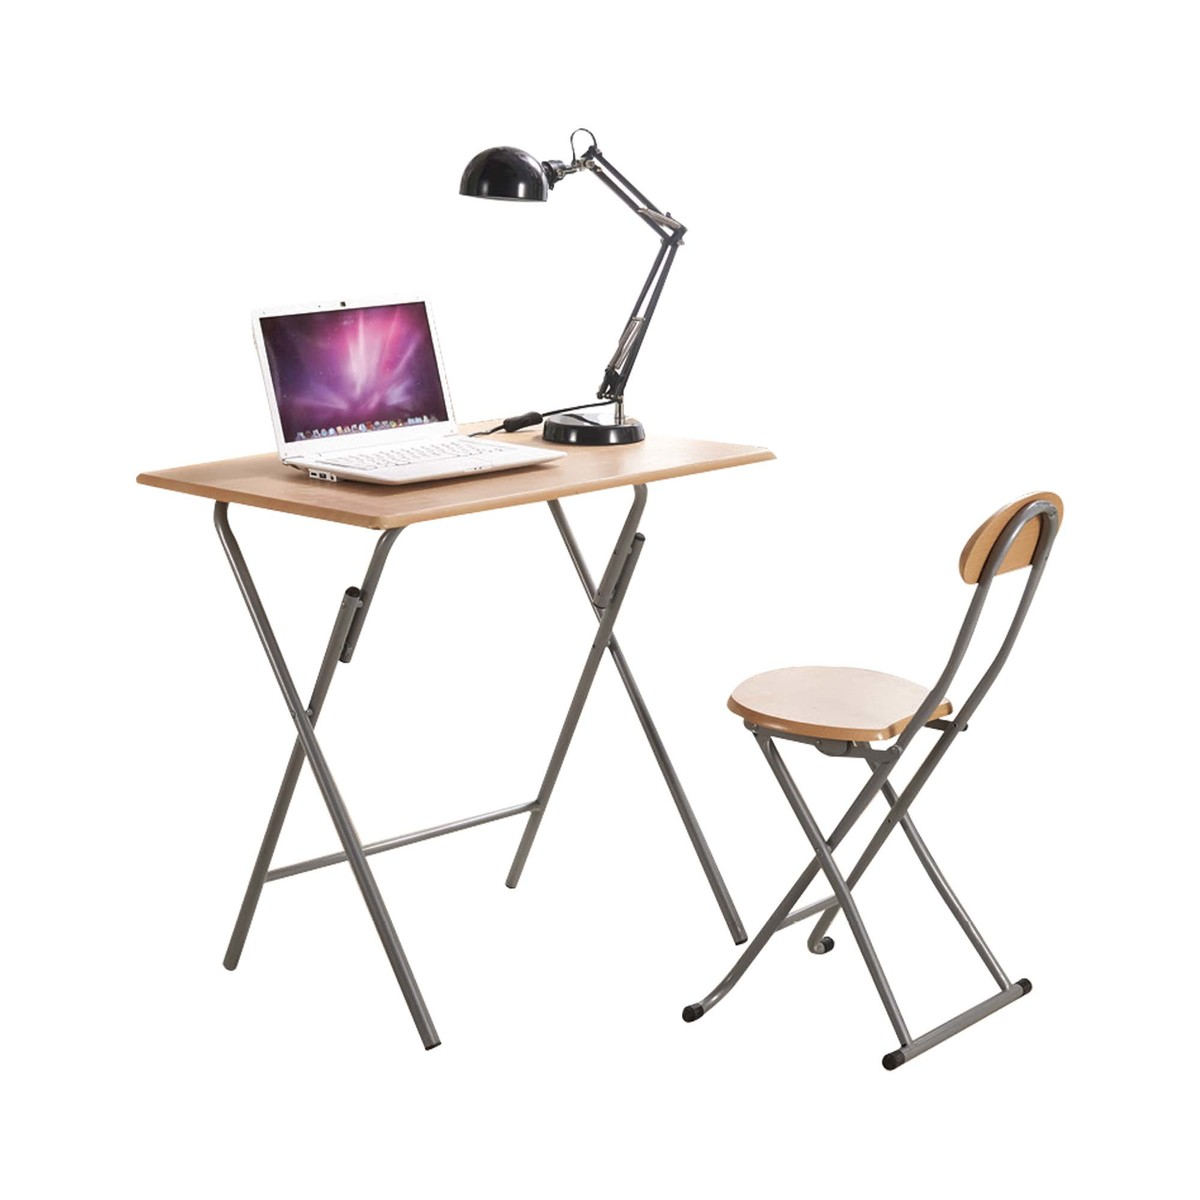 Home Style Folding Study Table + Chair KT9